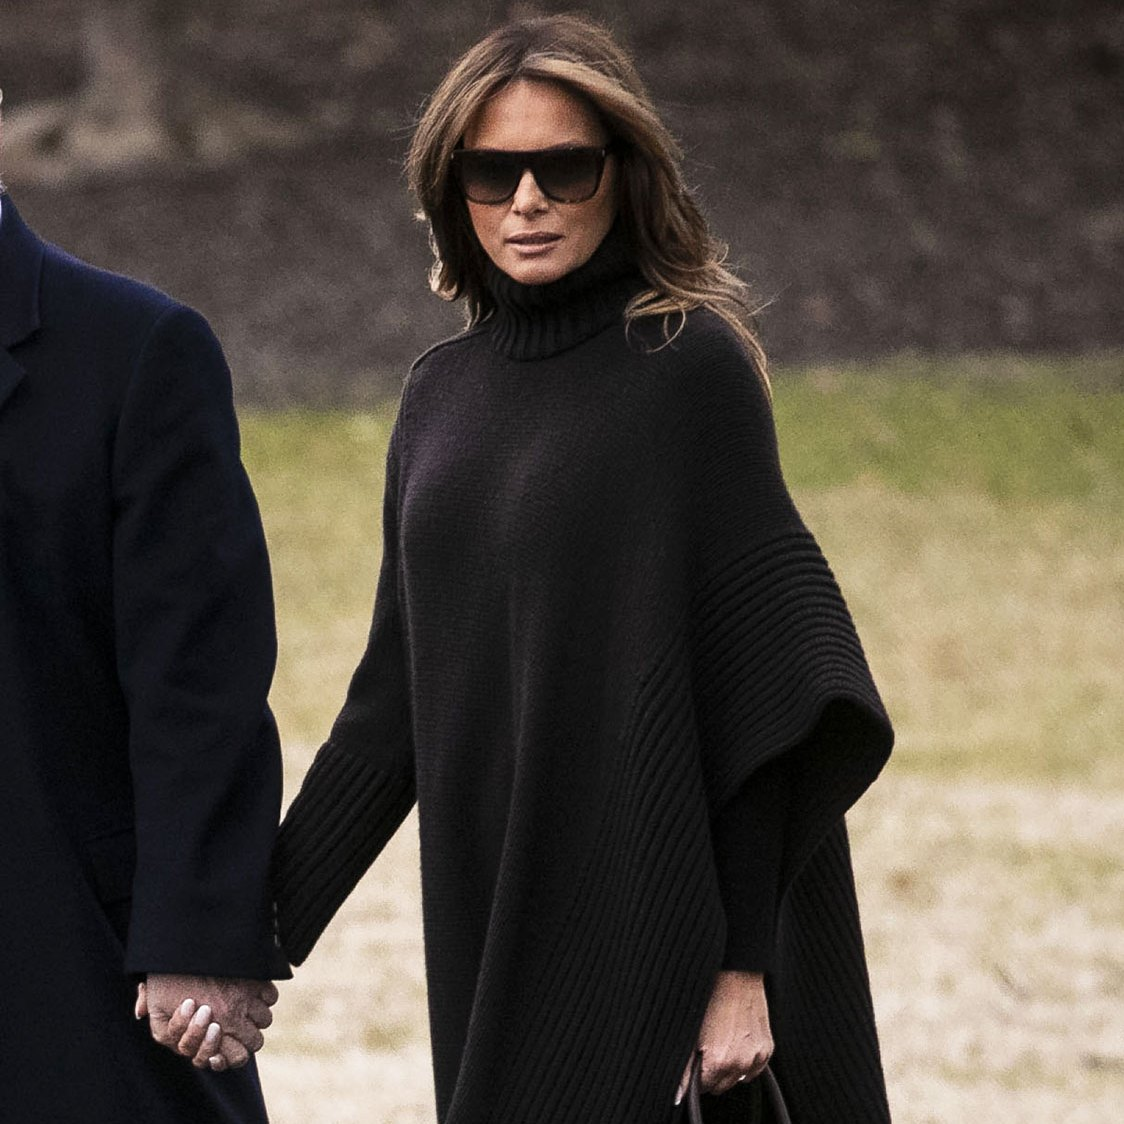 Melania Trump's Latest Outfit Includes a $2,300 Cashmere Poncho